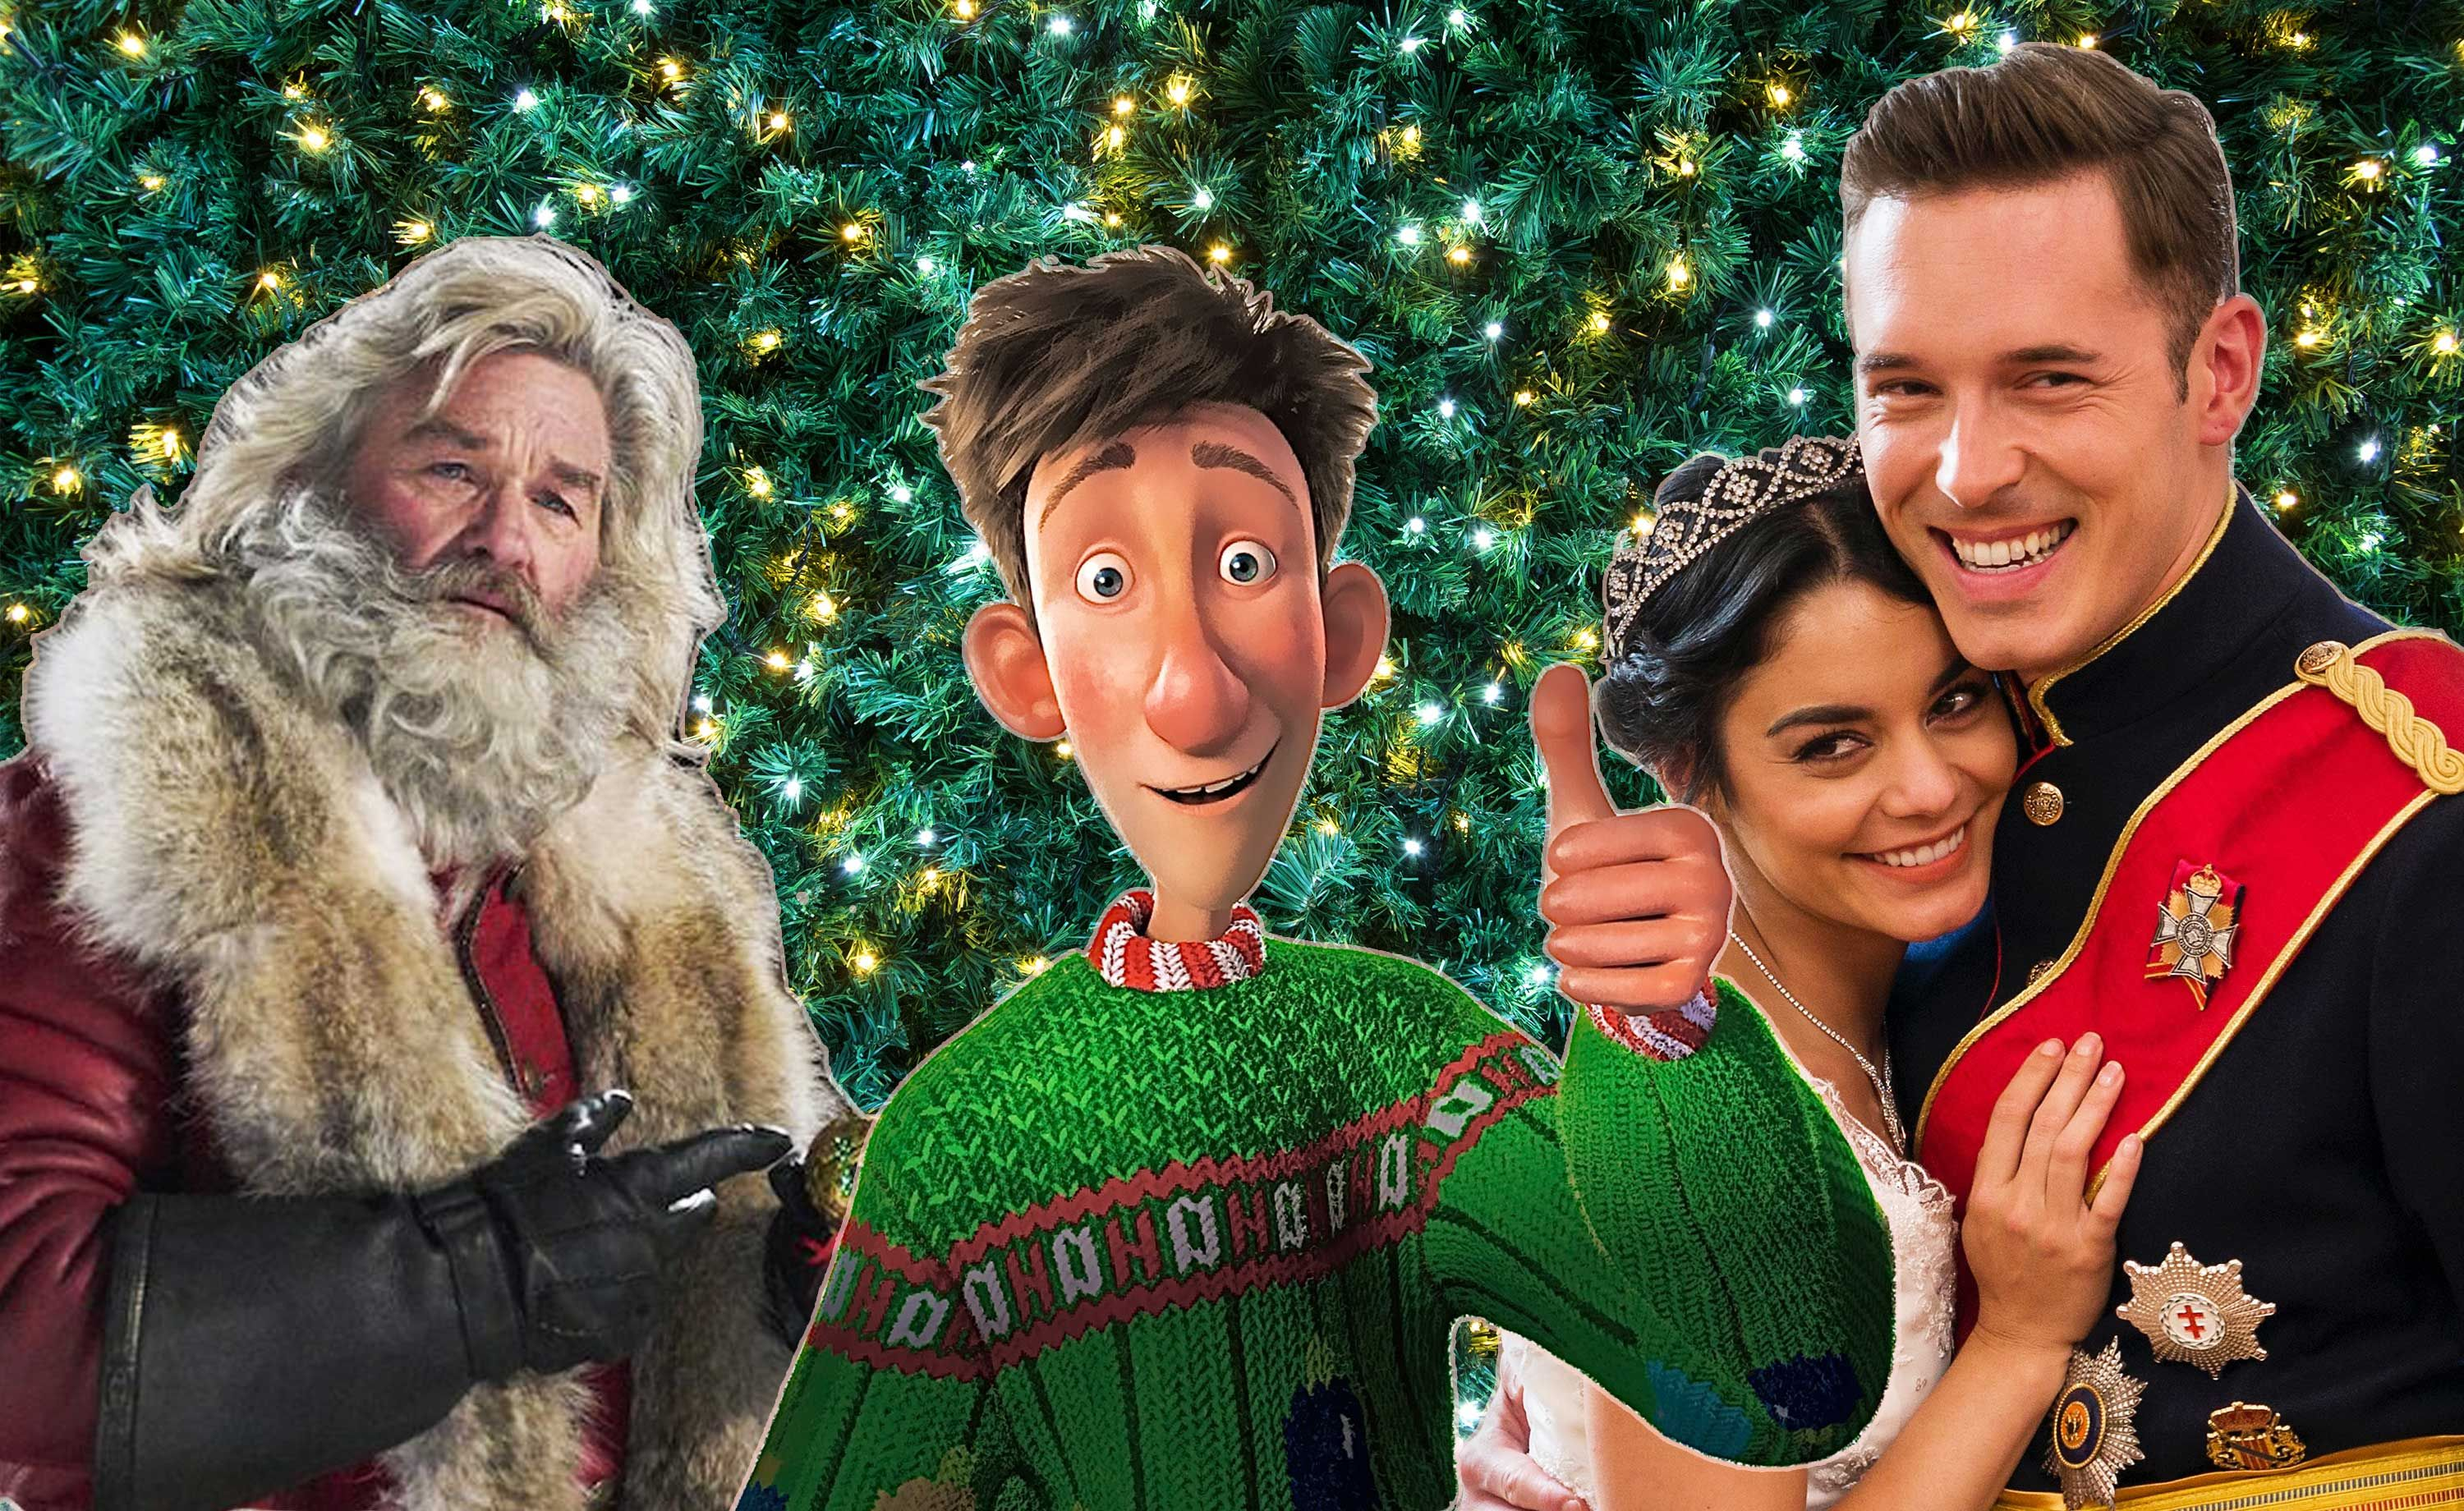 The best Christmas movies on Netflix - top festive themed